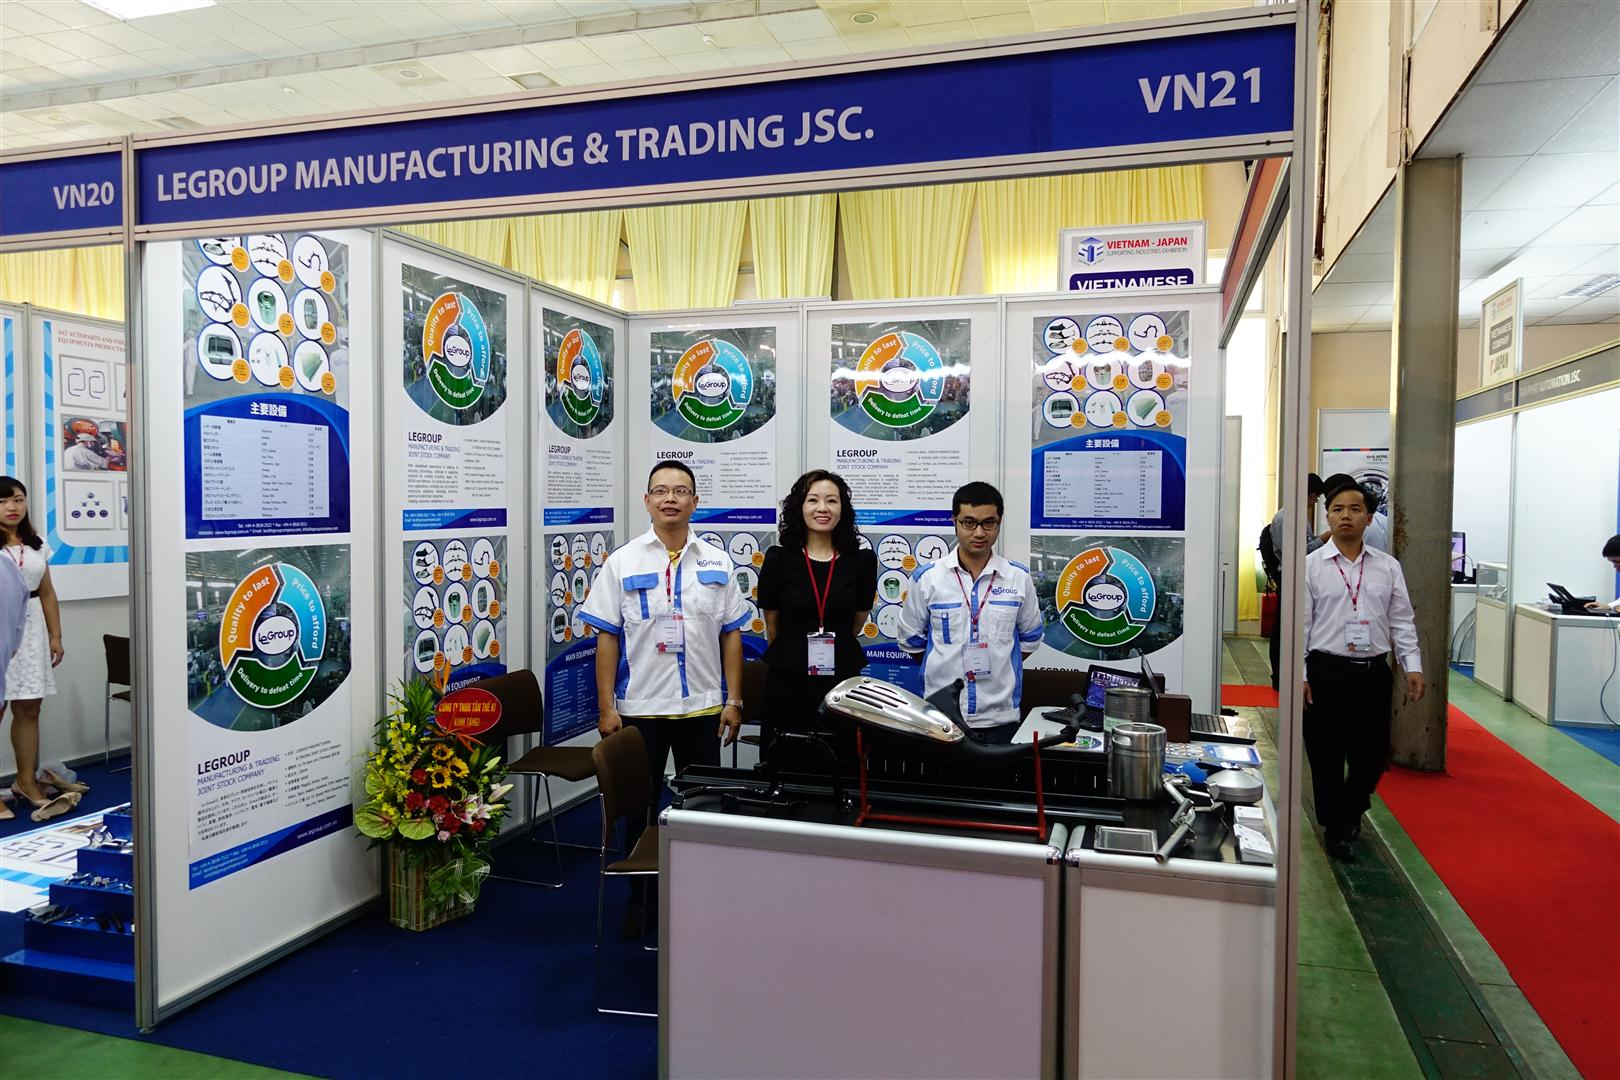 LeGroup is attending The Vietnam - Japan Supporting Industries Exhibition in Hanoi.